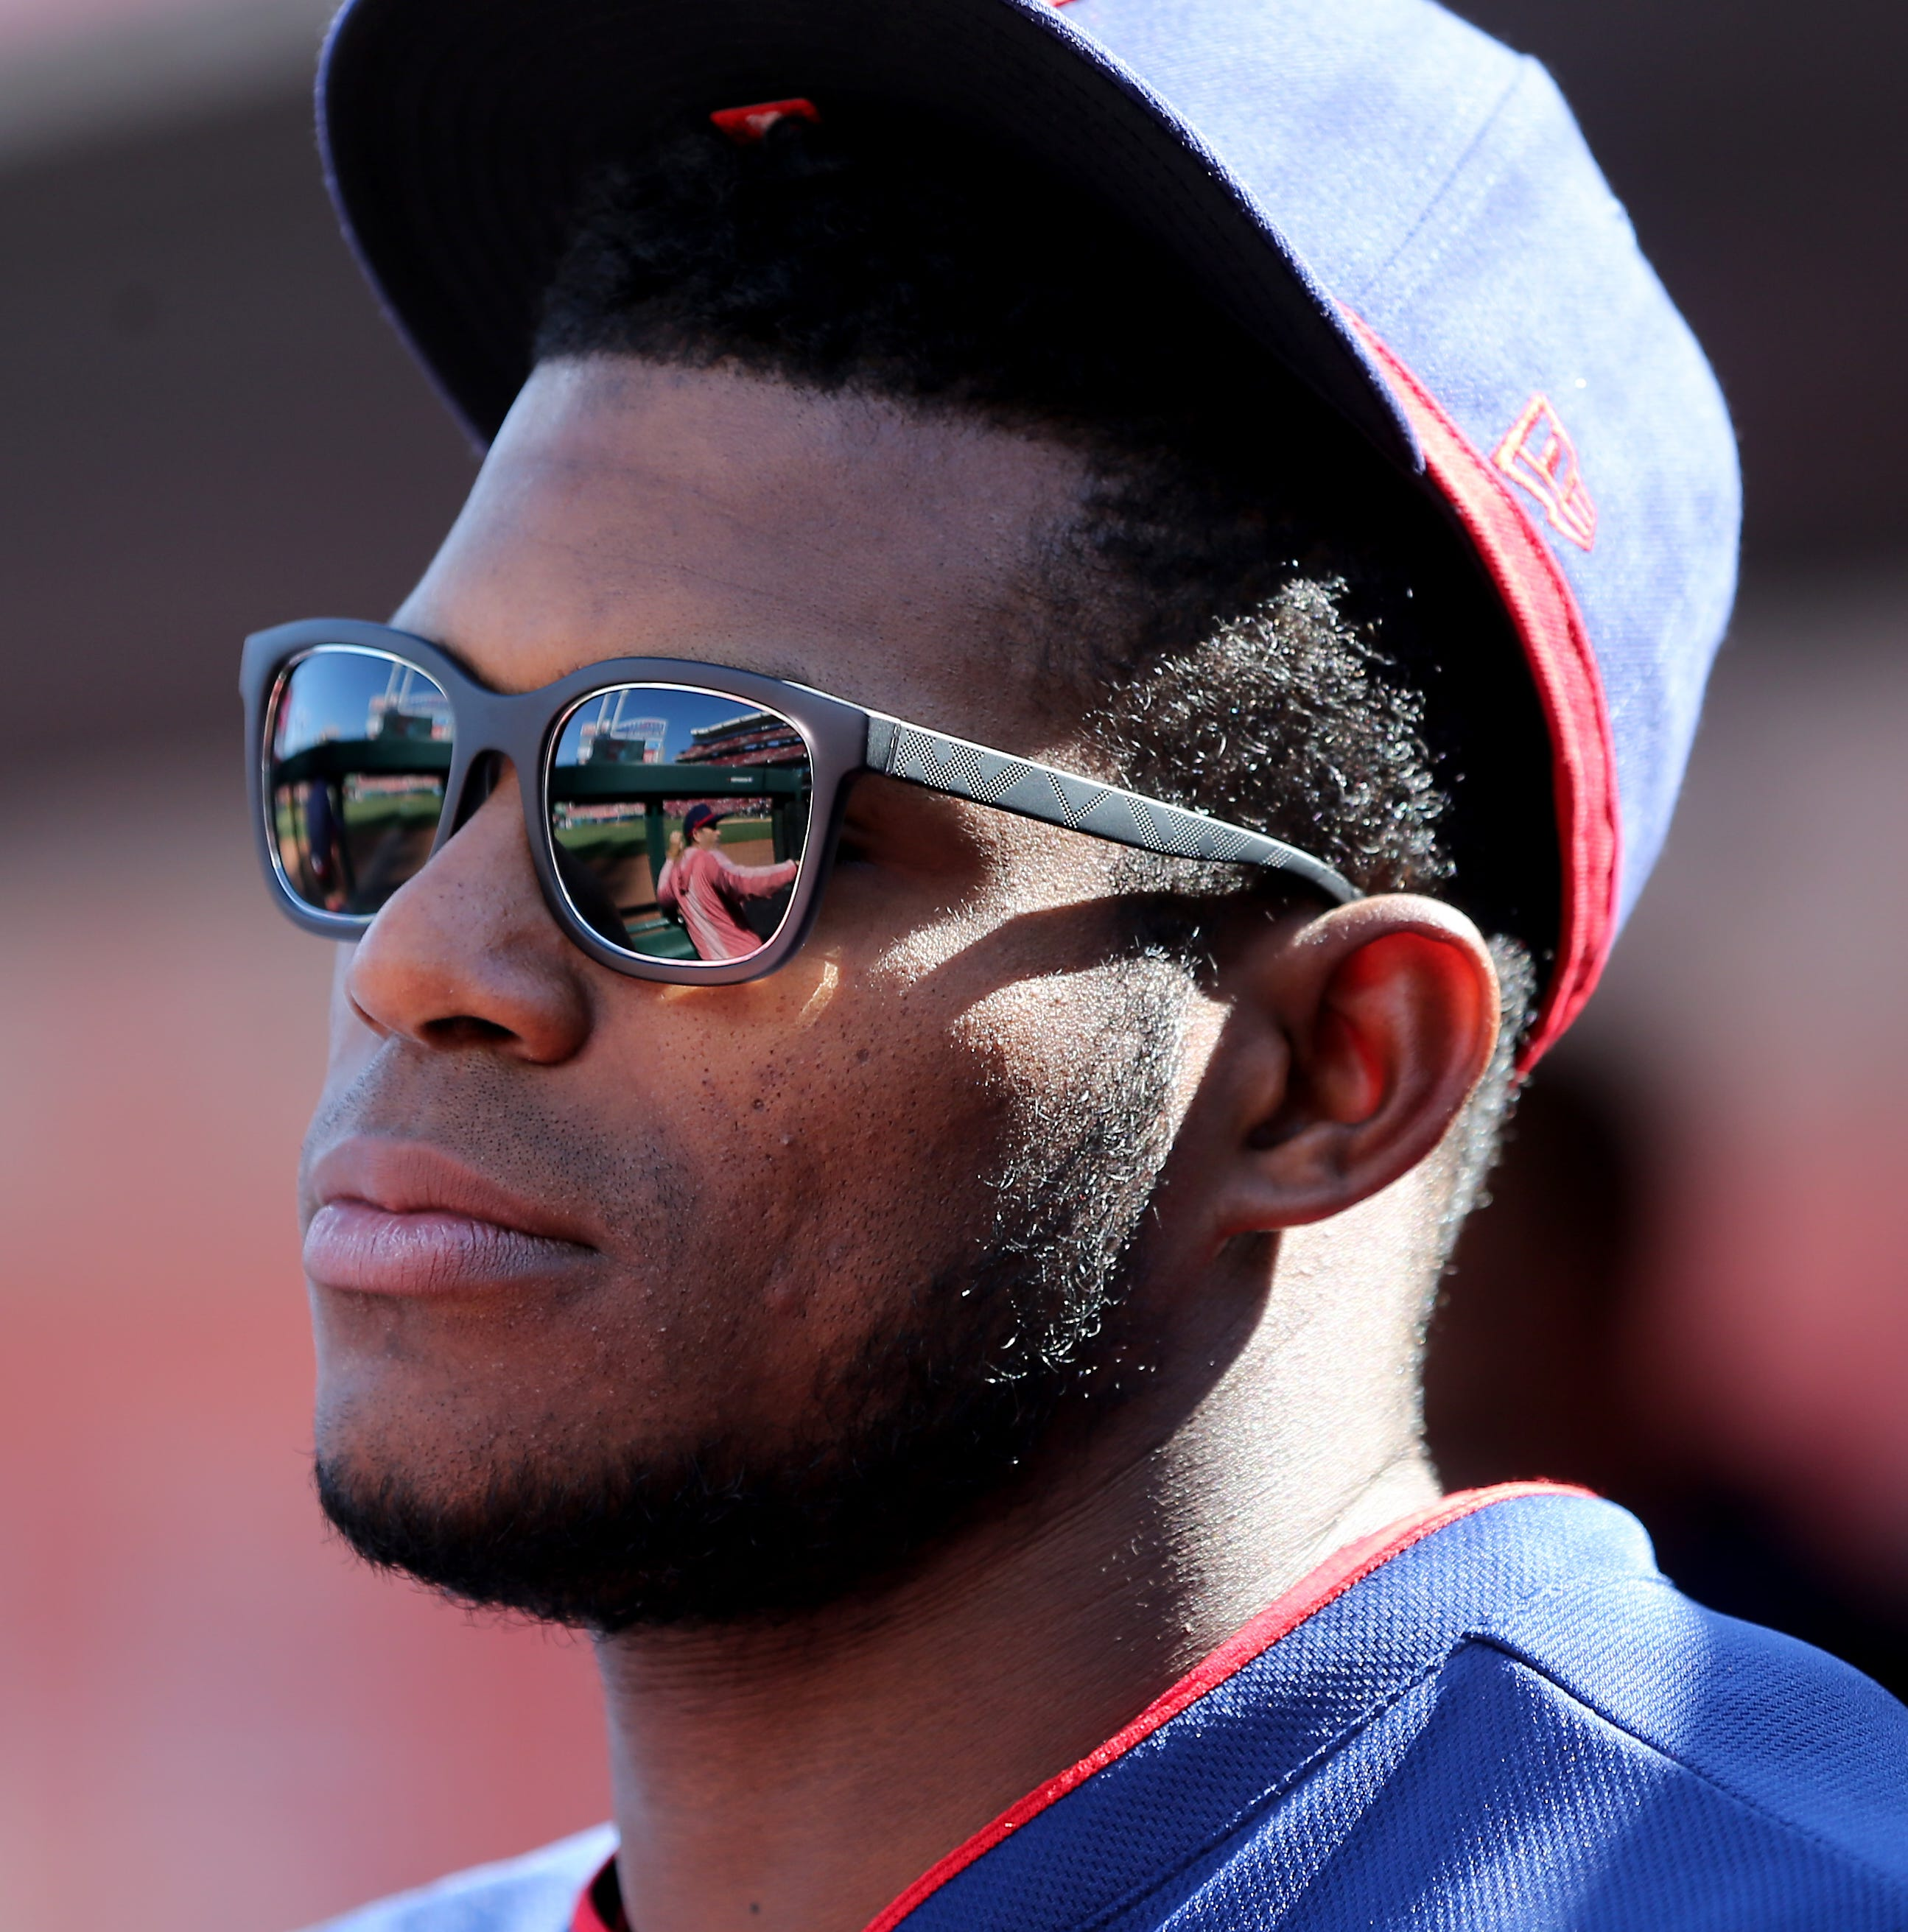 Traditionally a slow starter, Cincinnati Reds' Yasiel Puig feels like the hits are coming